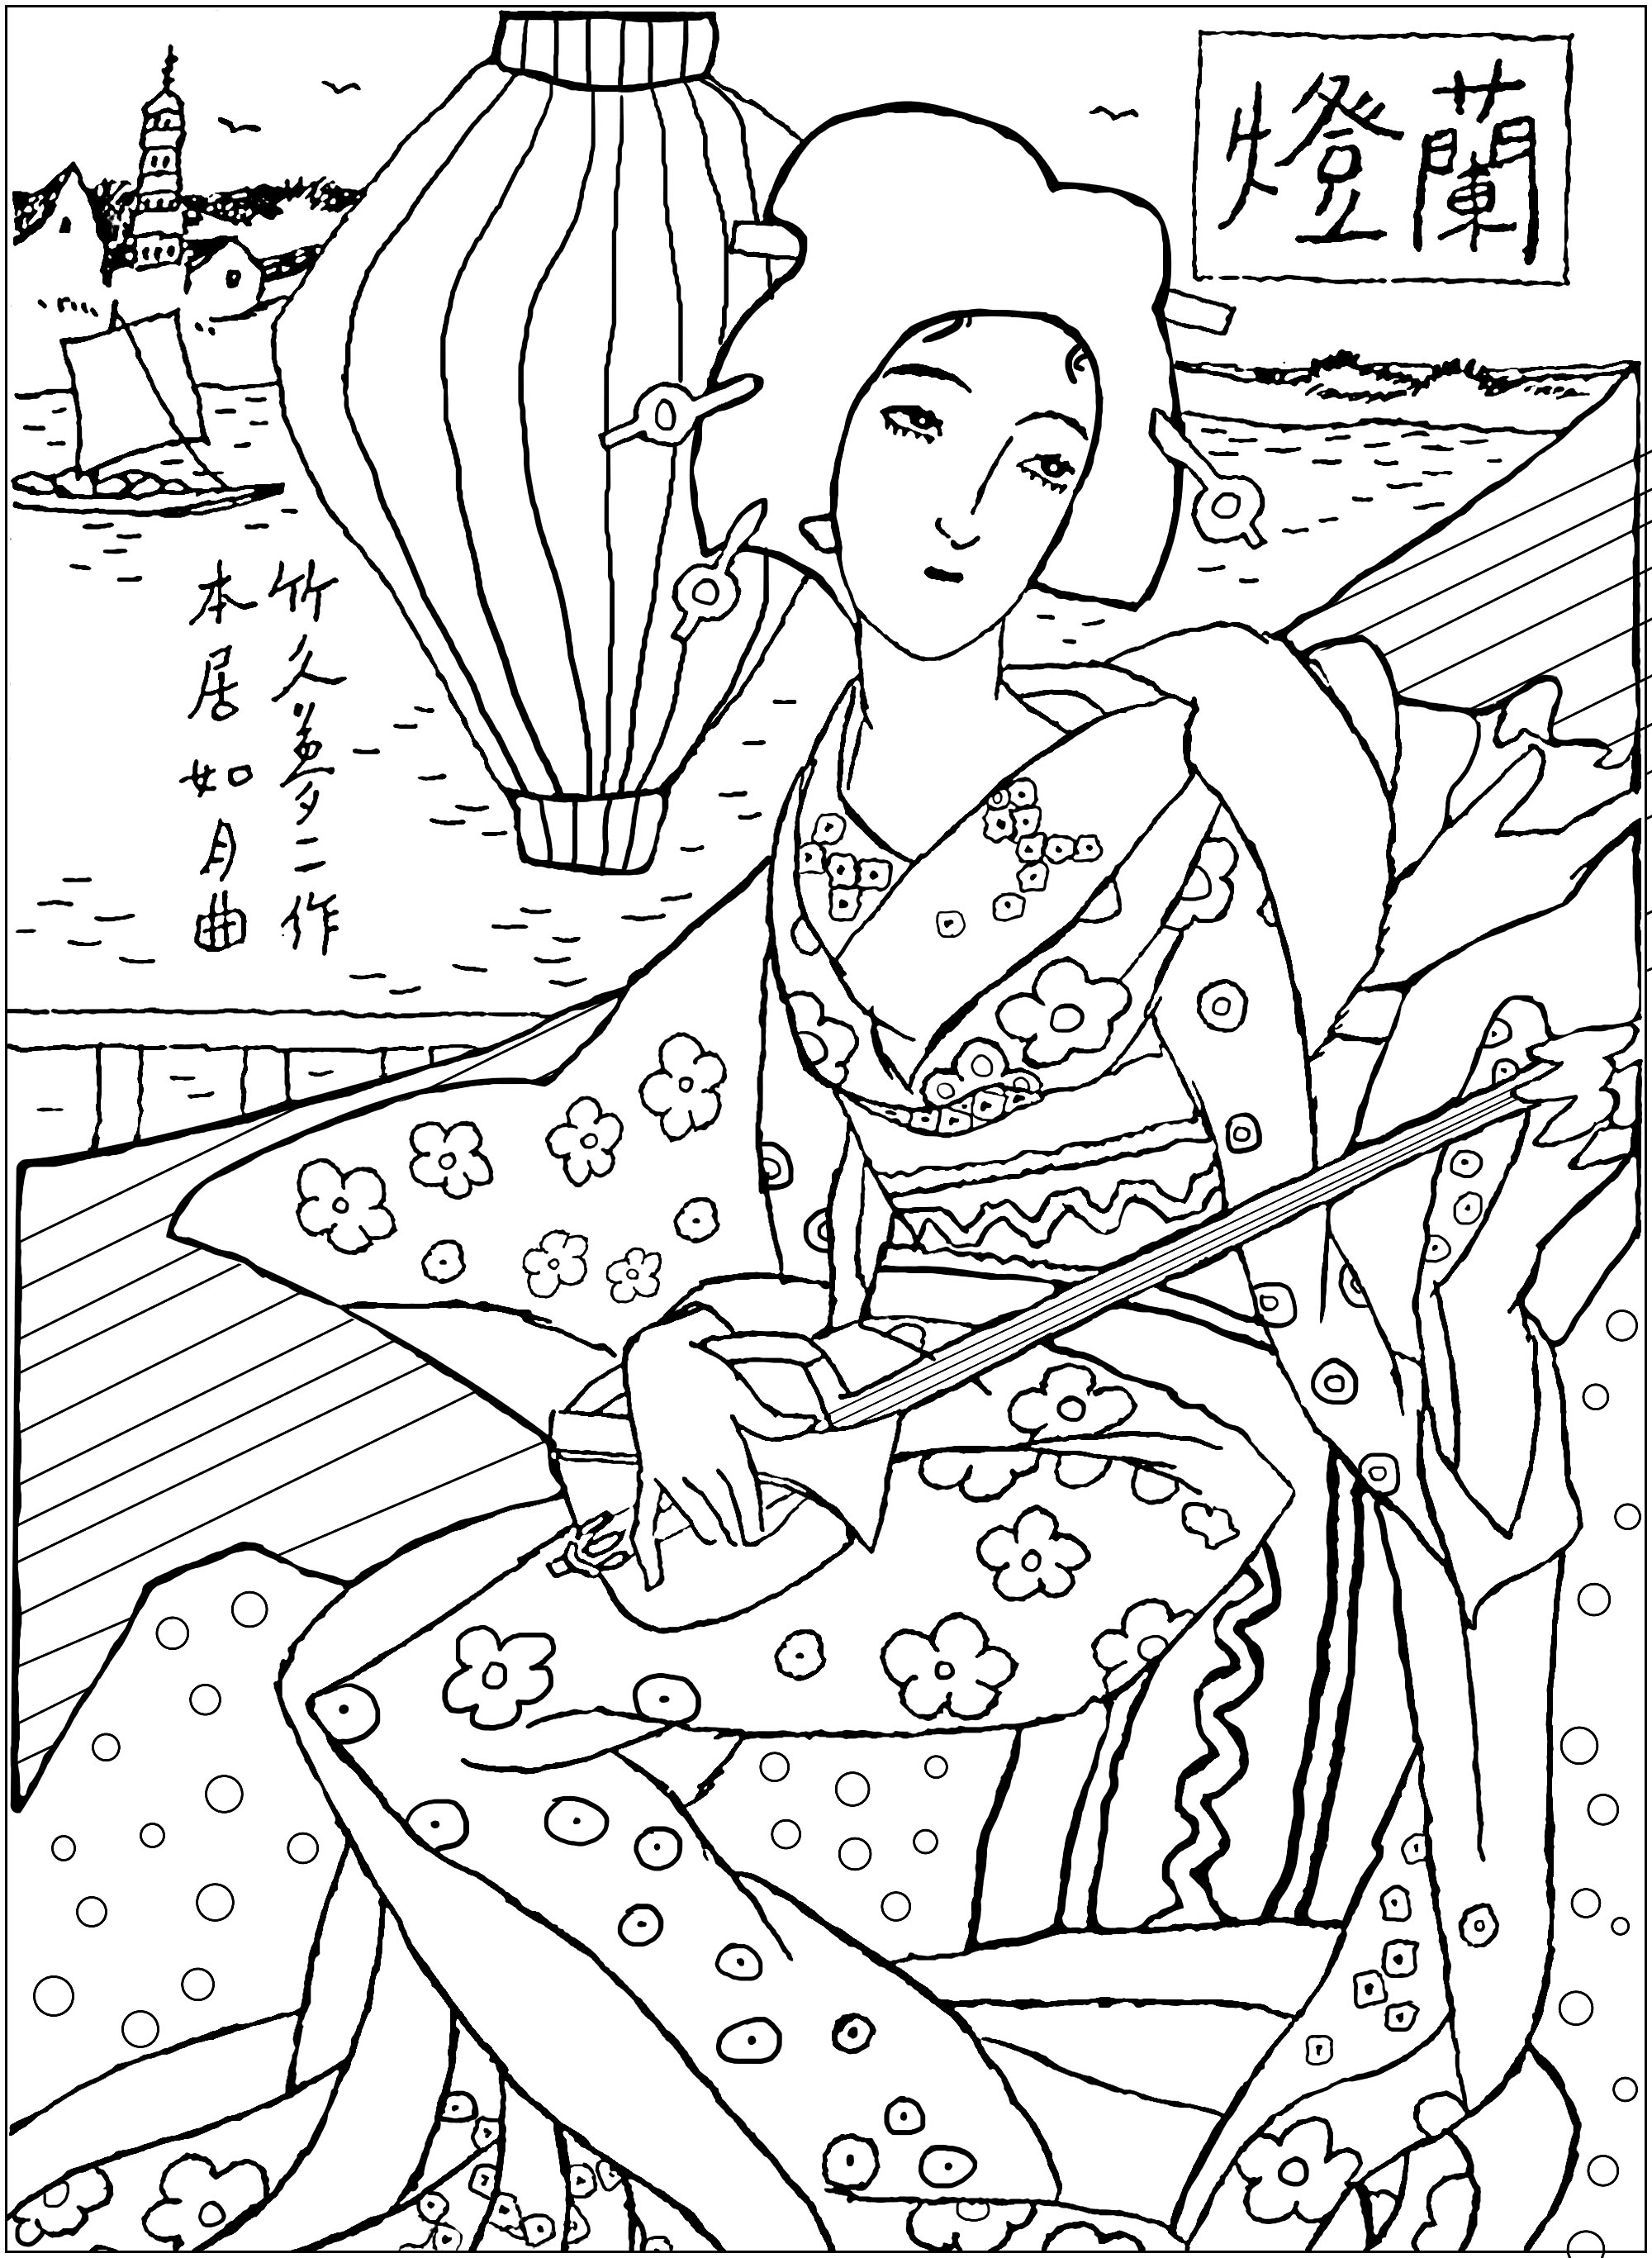 Exclusive drawing inspired by a painting with a Japanese Geisha